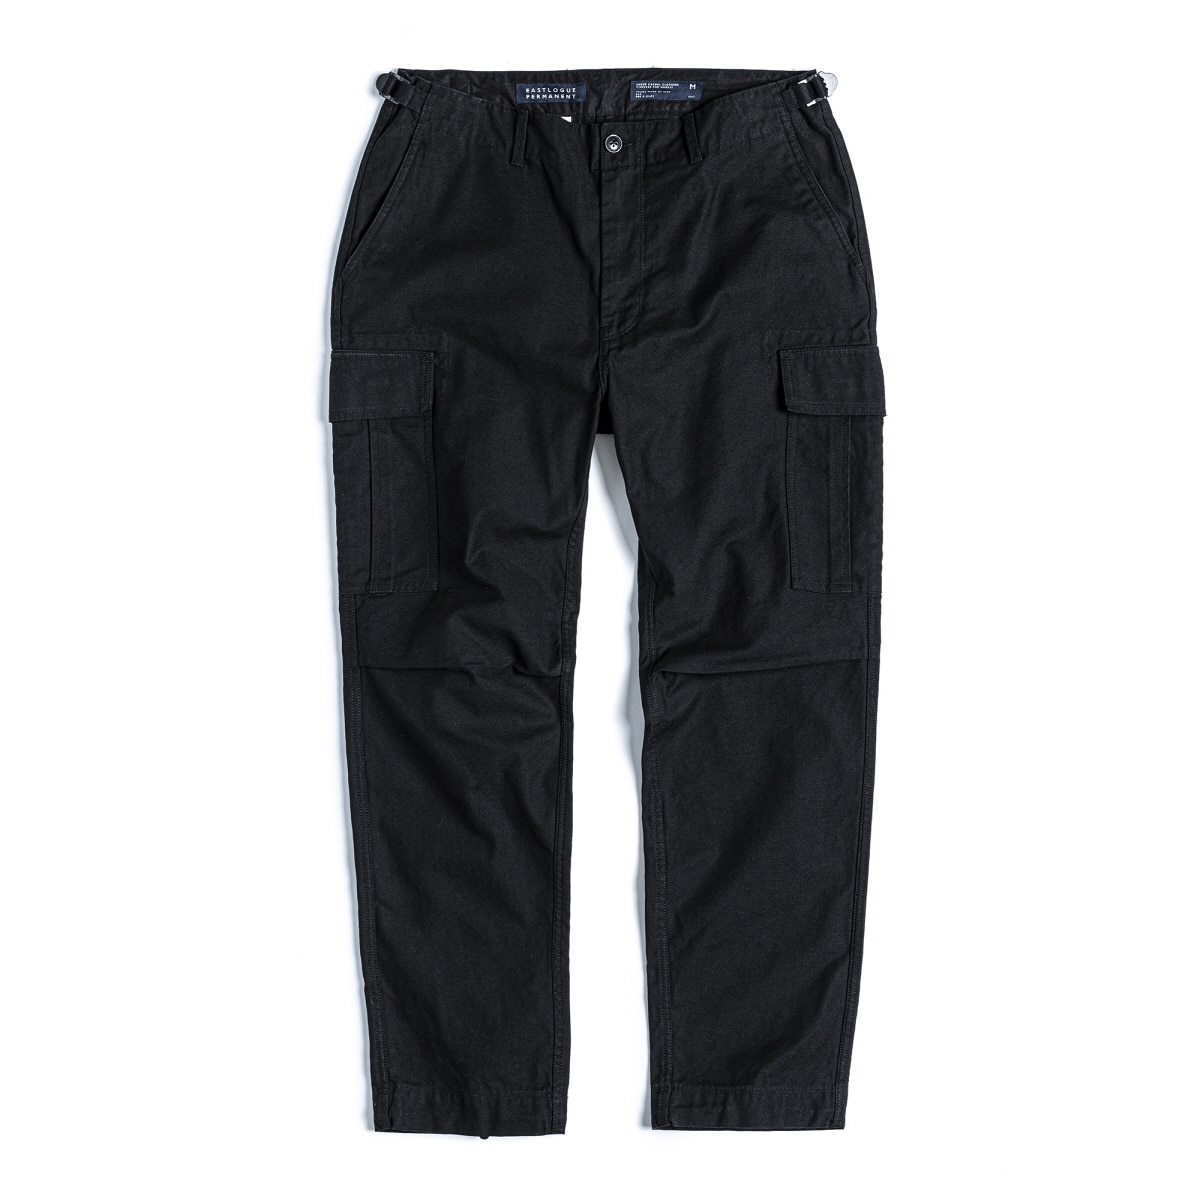 FIELD PANTS SLIM FIT - BLACK BACK SATIN